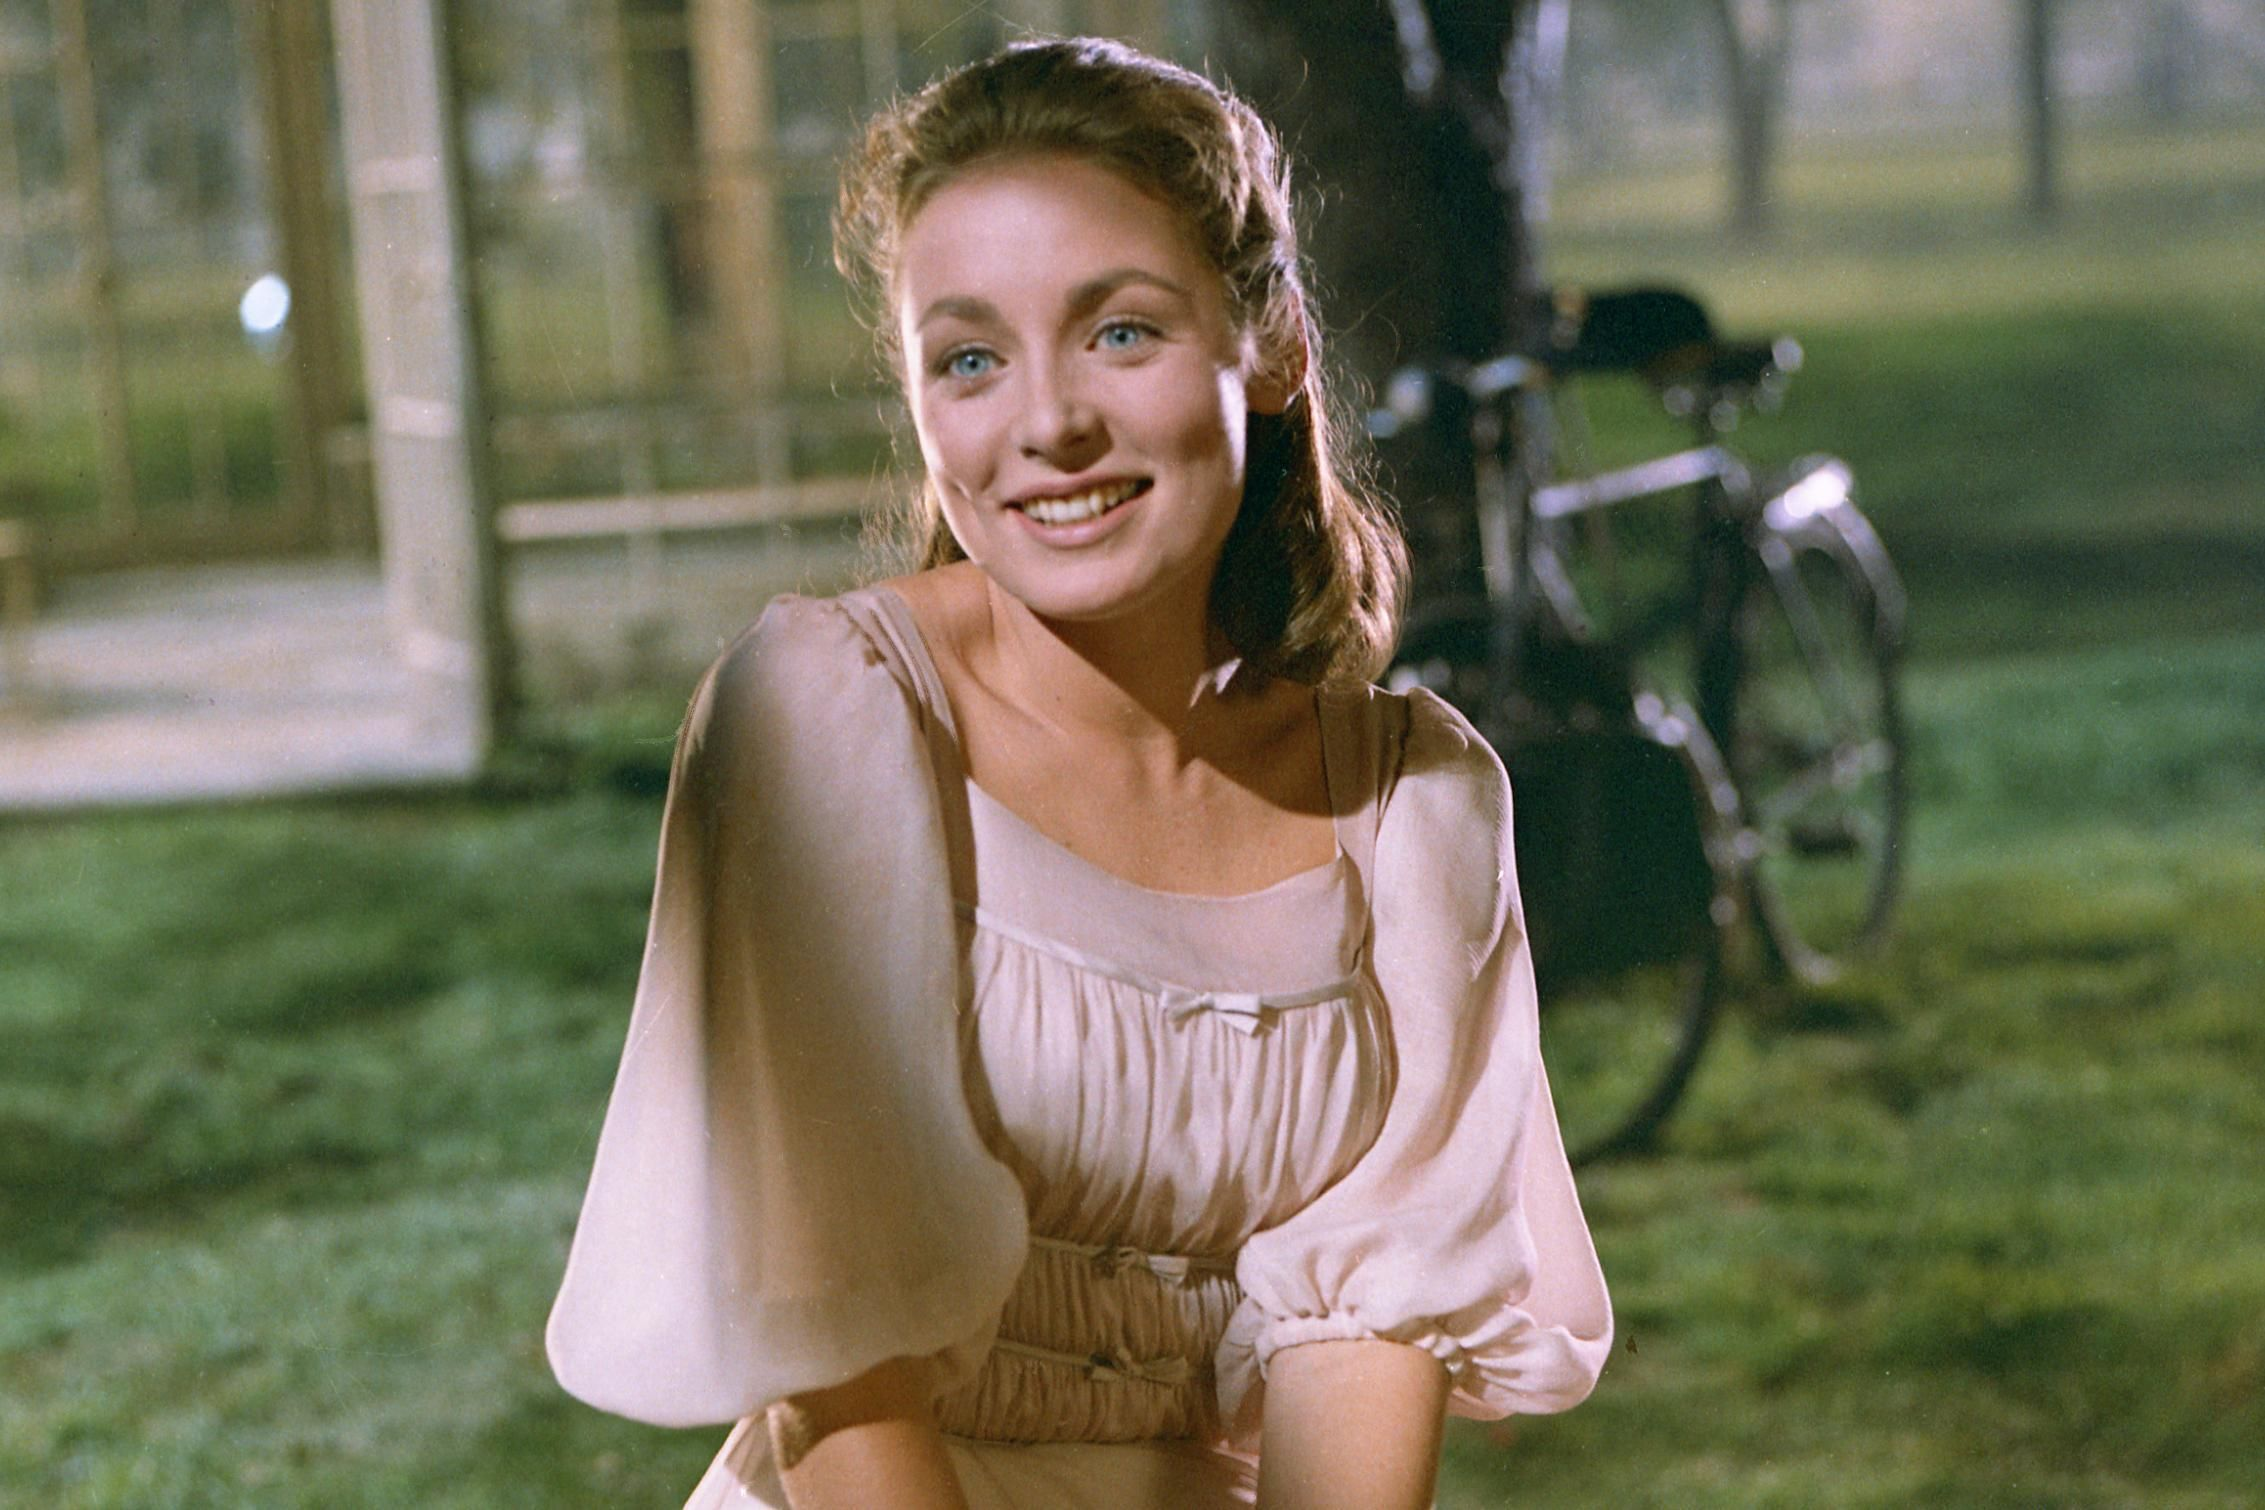 Charmian Carr, actress who played Liesl in 'The Sound of Music,' dies at 73 #soundofmusic